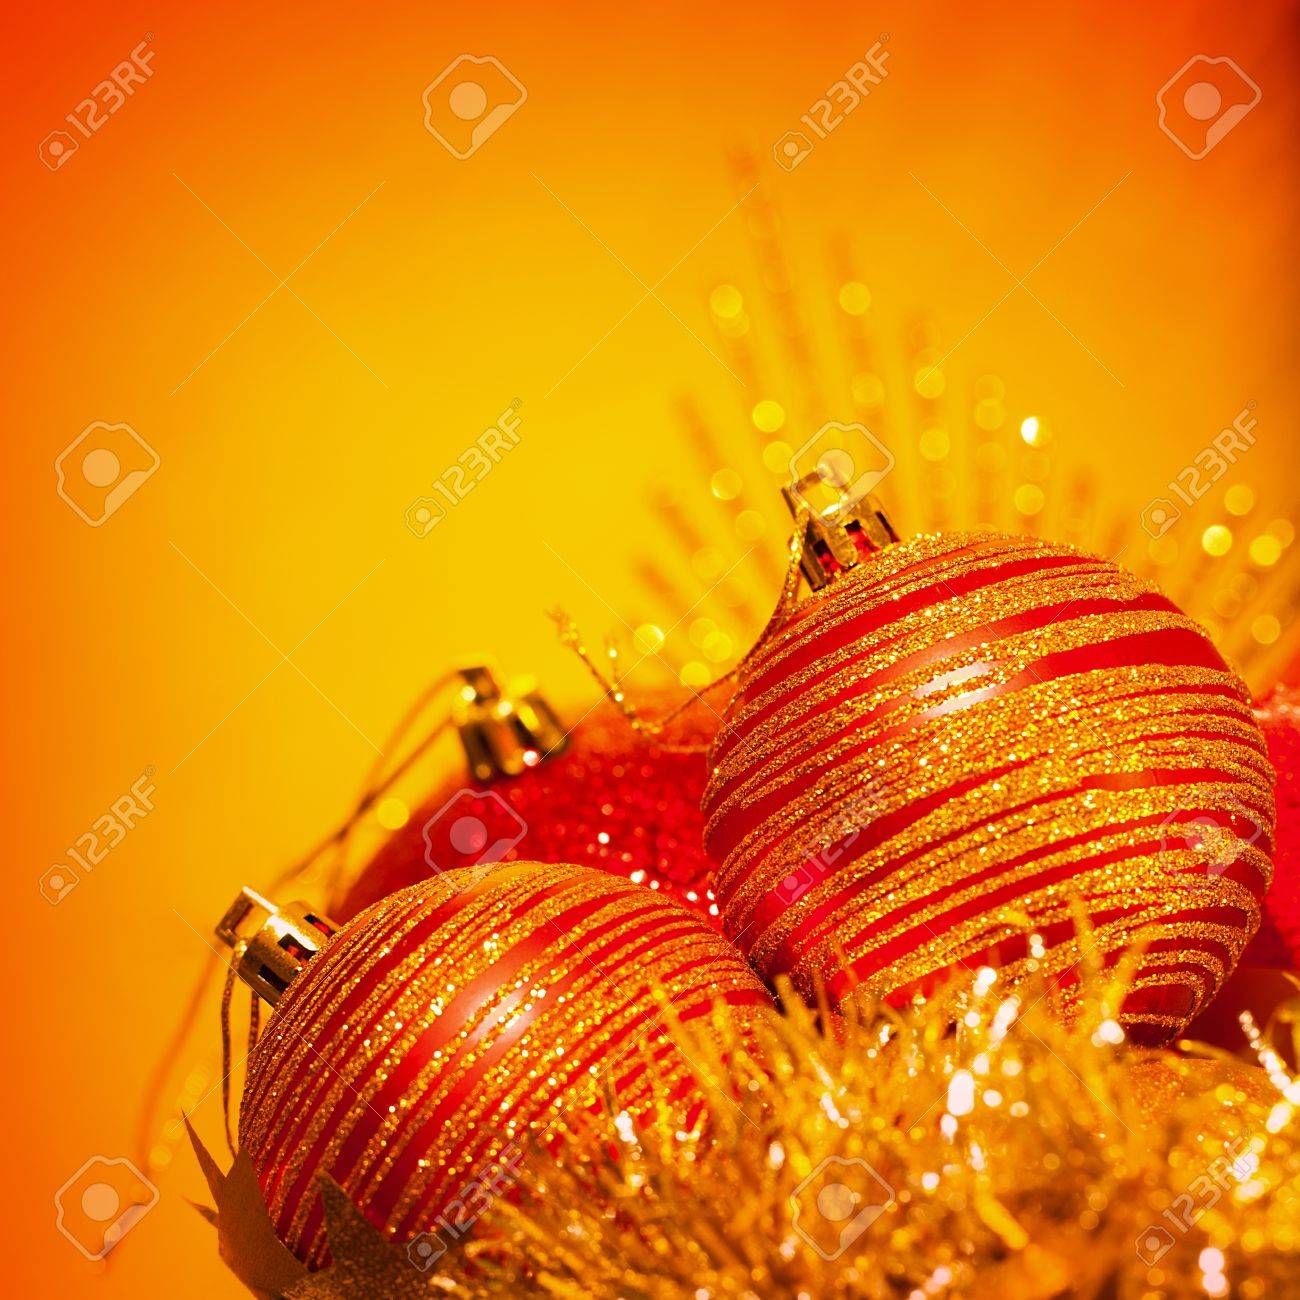 image of red christmas bubbles border festive decorations isolated on orange background golden holiday